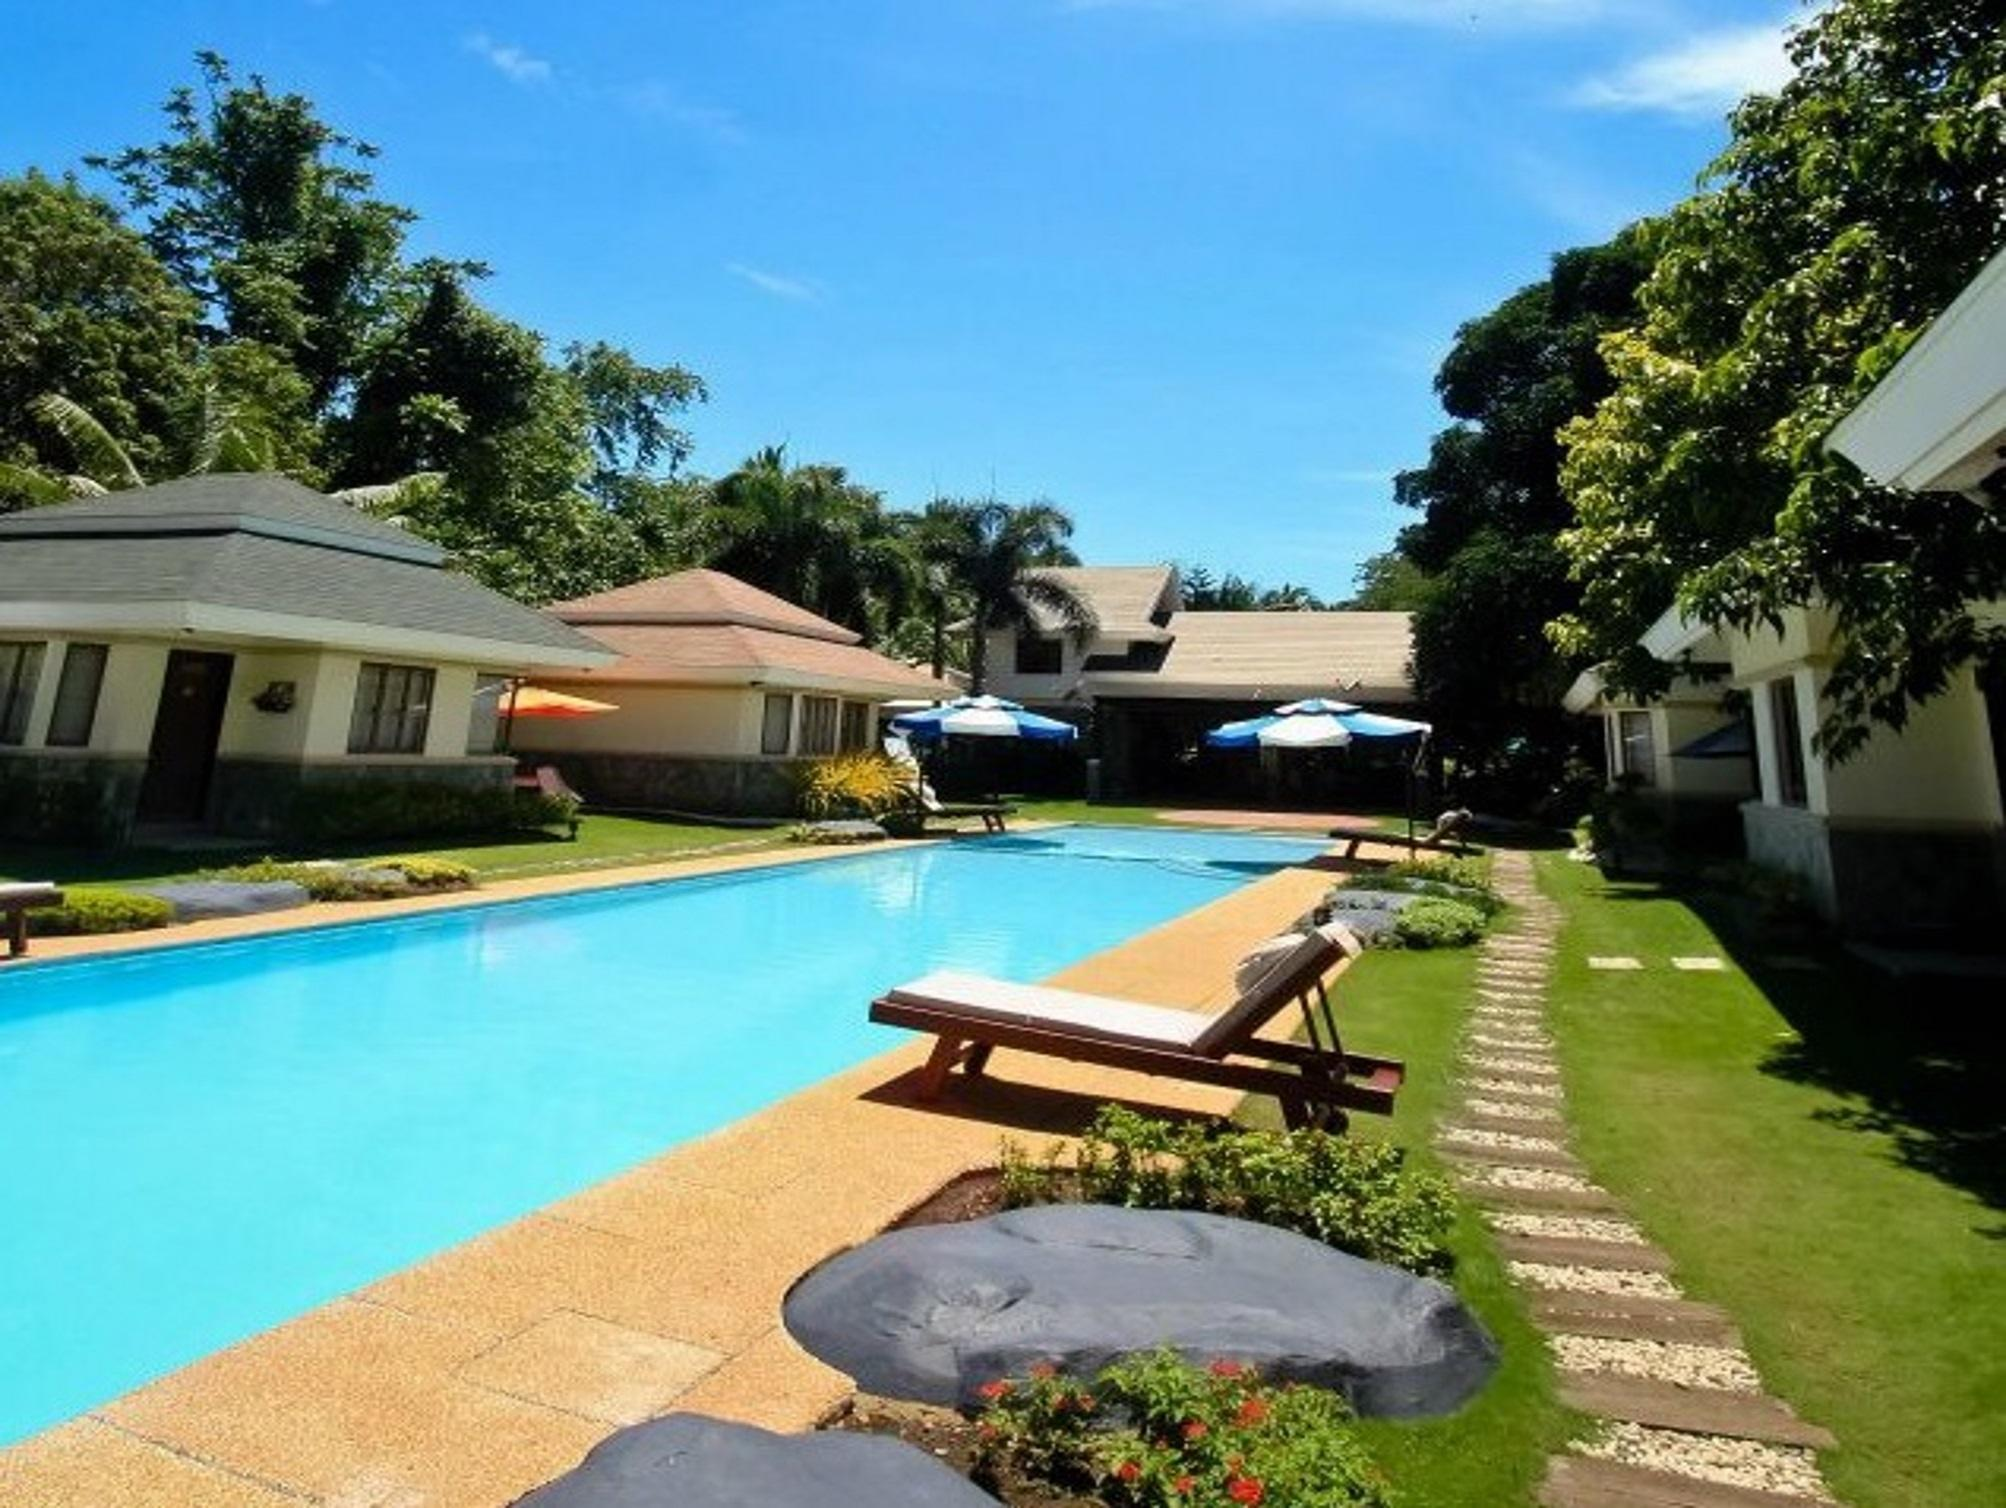 Bali Bali Beach Resort Davao City - Hotellet udefra